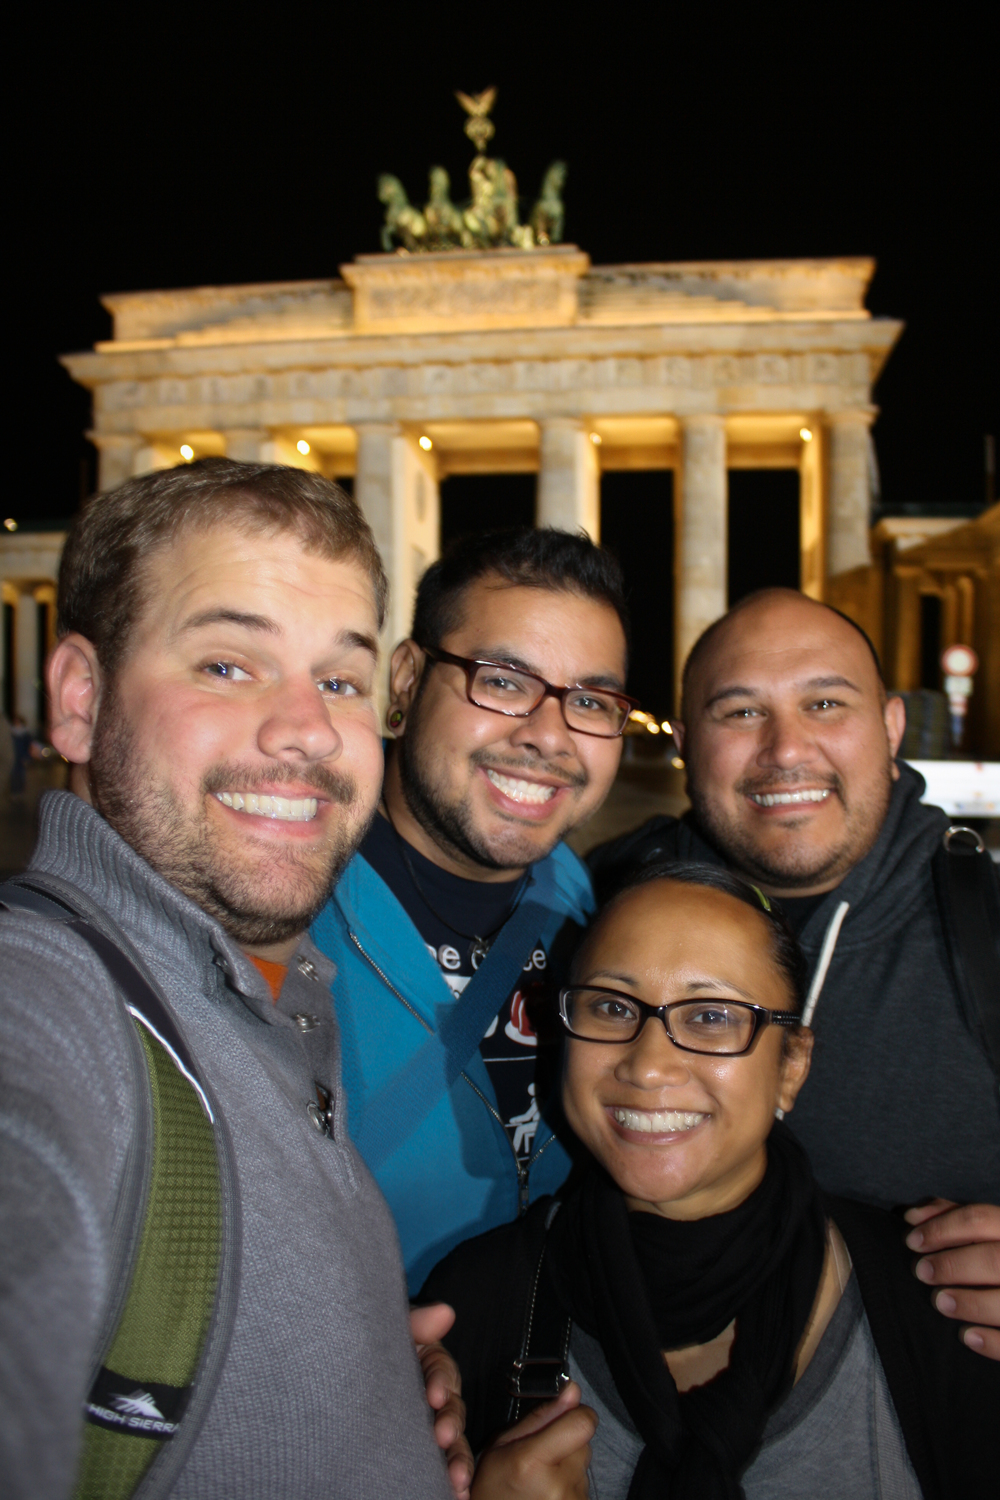 Weather began to clear up a bit on our last night so we took one final walk. Again, the Brandenburg gate was 7 minutes from the hotel, so why not?